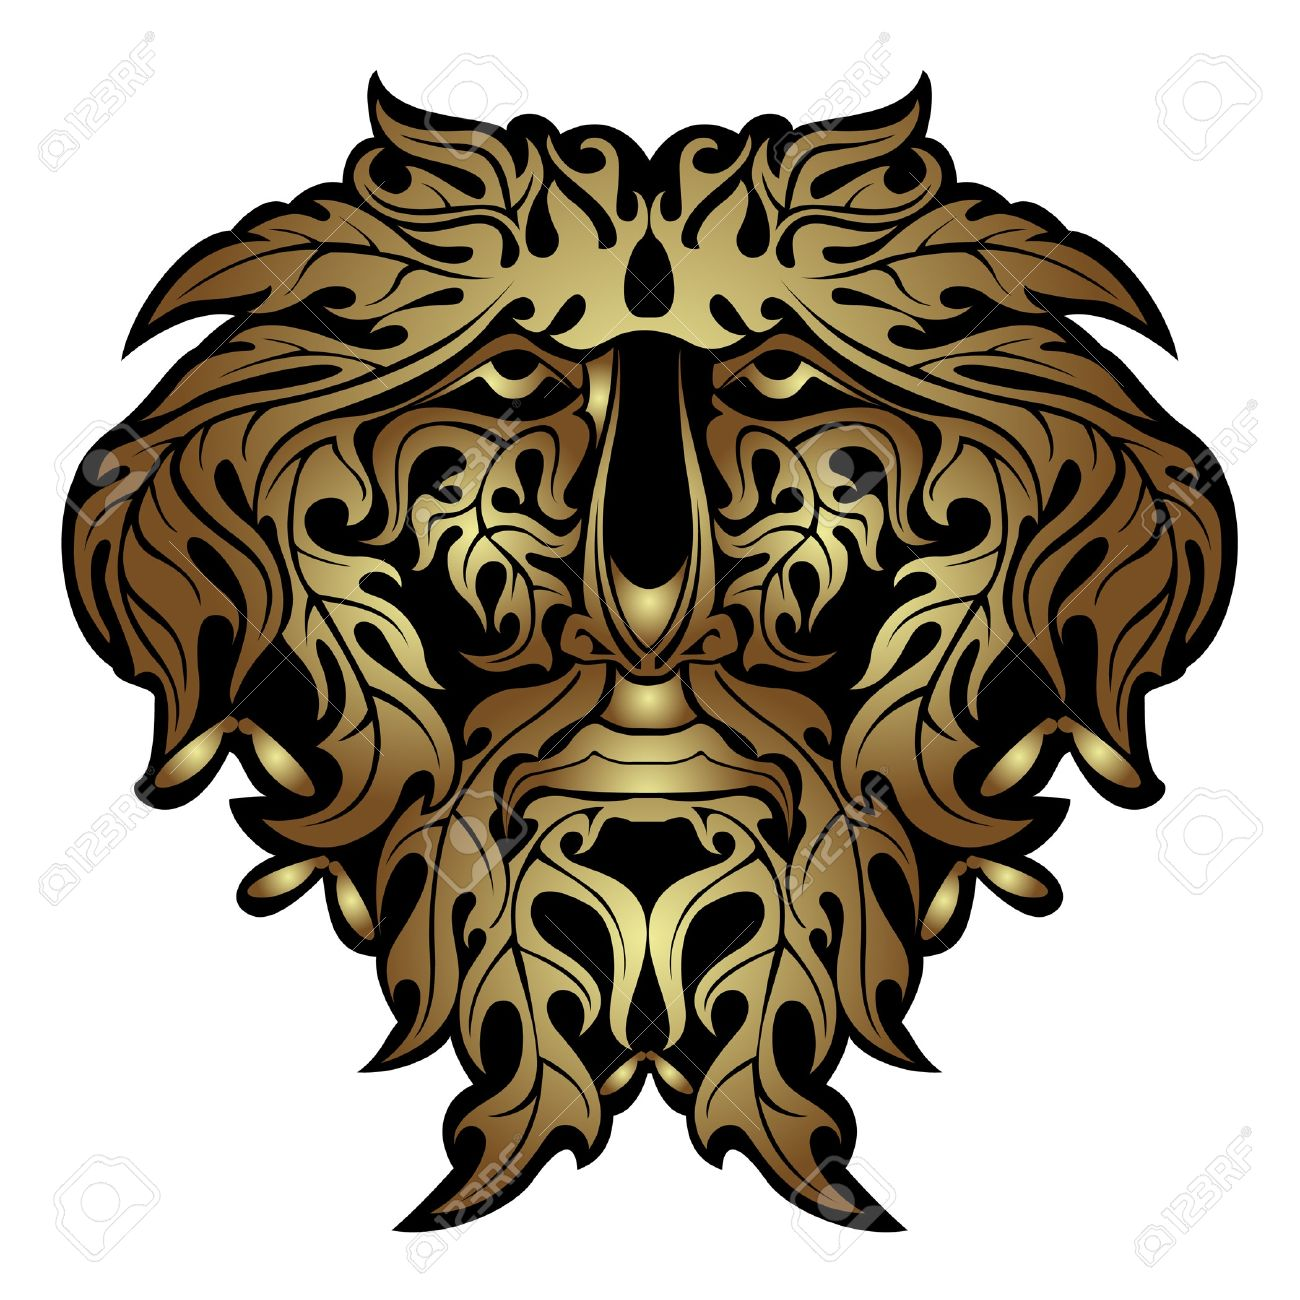 Gold Forest Spirit Face Royalty Free Cliparts, Vectors, And Stock.